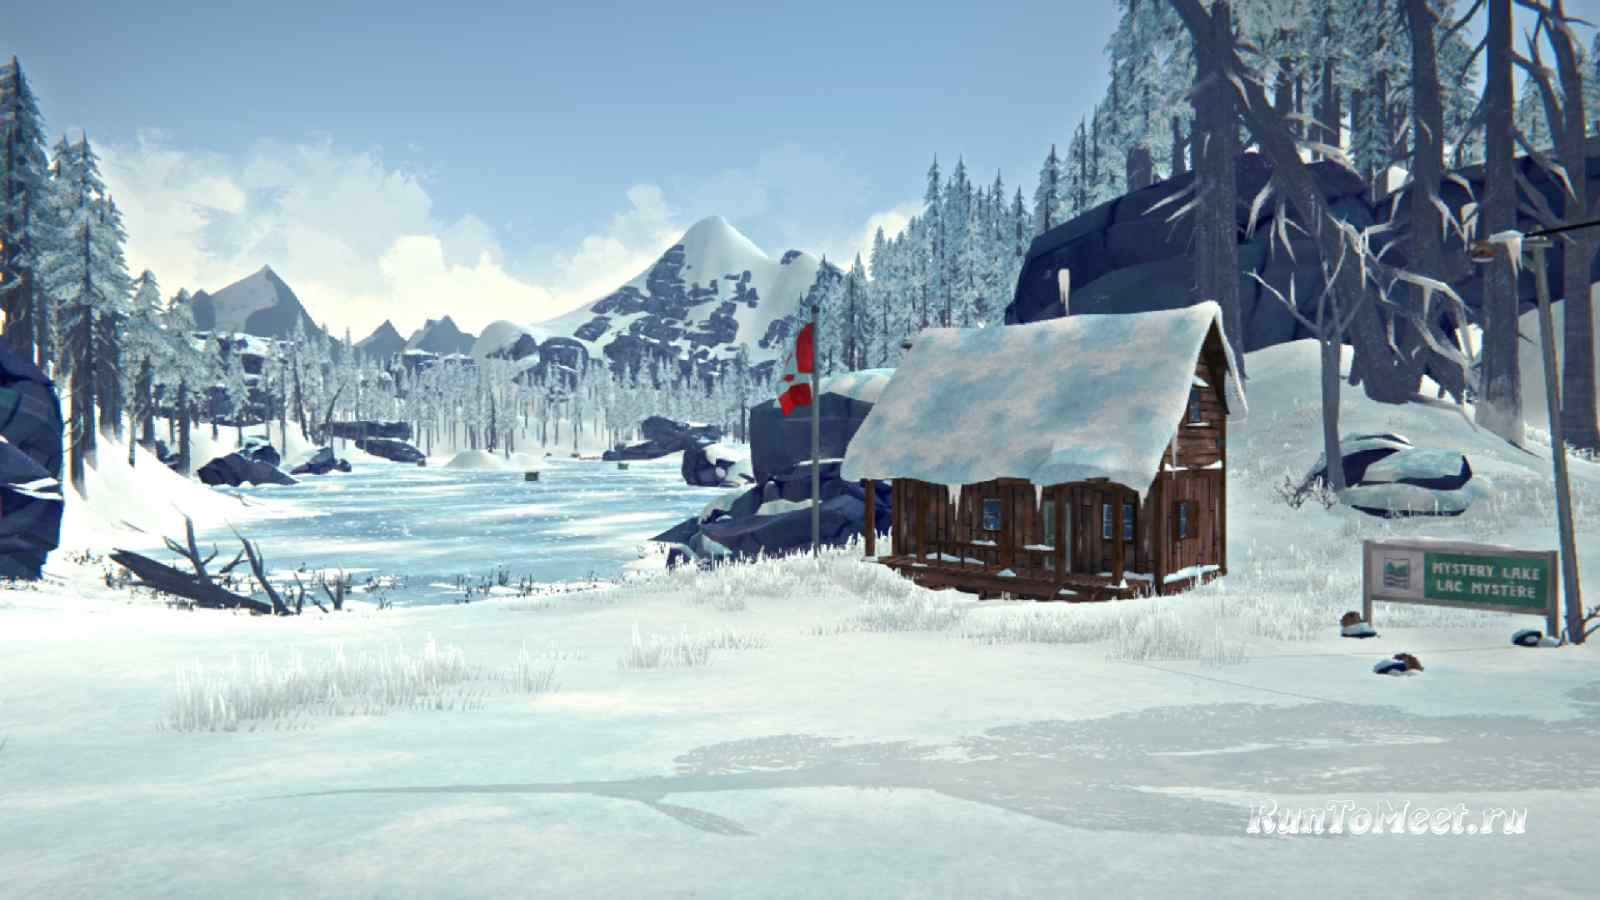 Администрация турбазы на локации Загадочное озеро, в игре The long dark